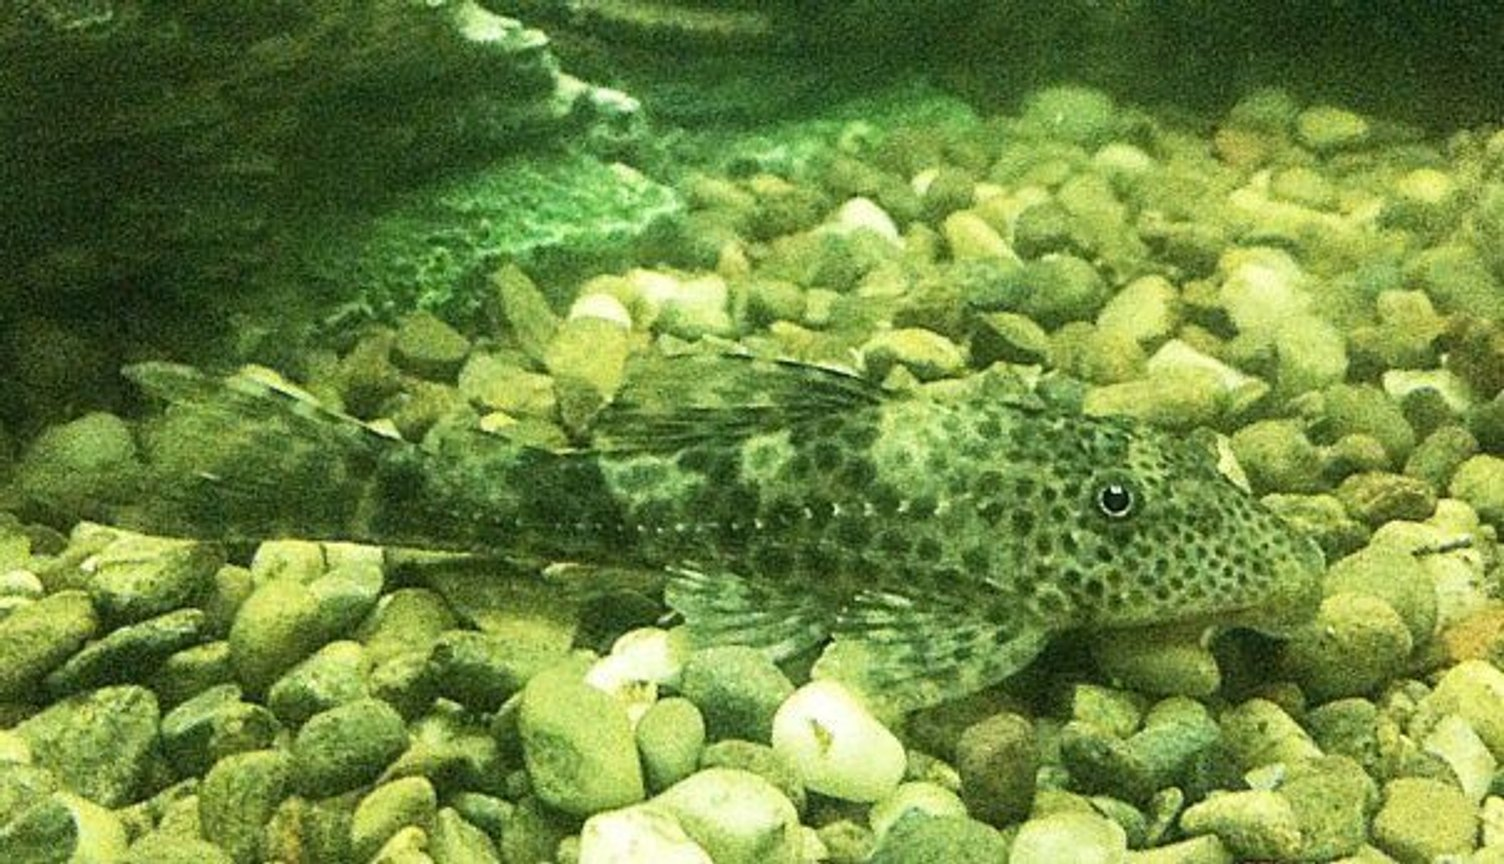 freshwater fish - glyptoperichthys gibbiceps - sailfin pleco (l-83) stocking in 1200 gallons tank - Baby spotted sailfin pleco